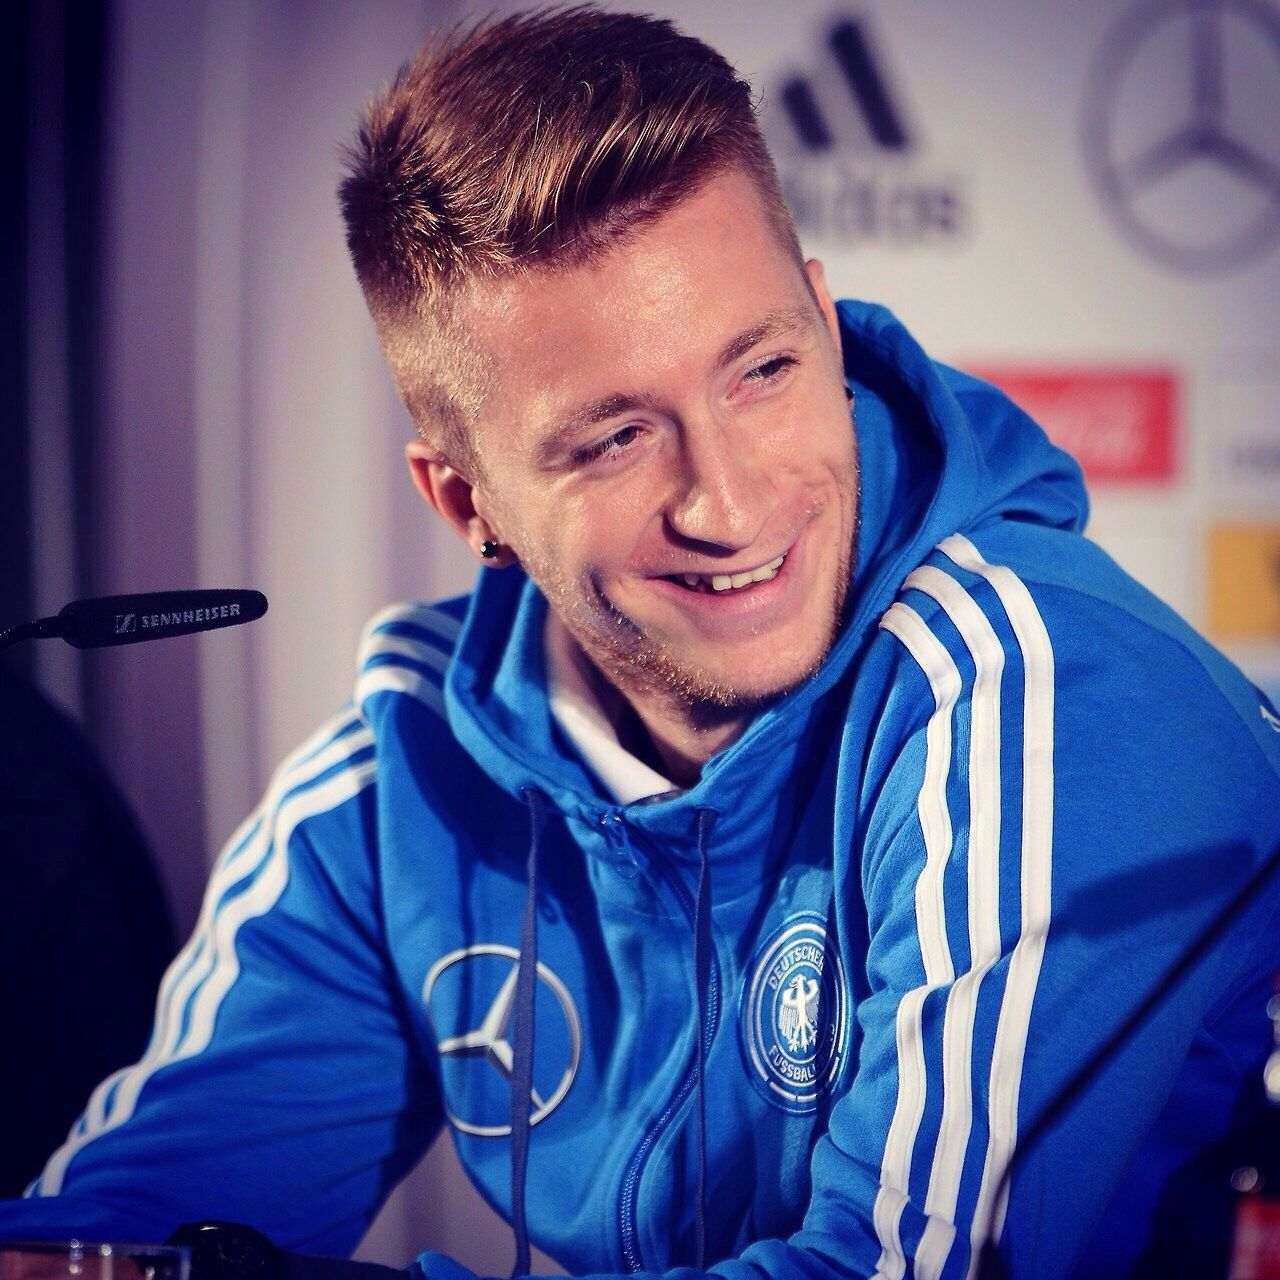 His smile. I'm in love with his smile Marco reus, Dfb